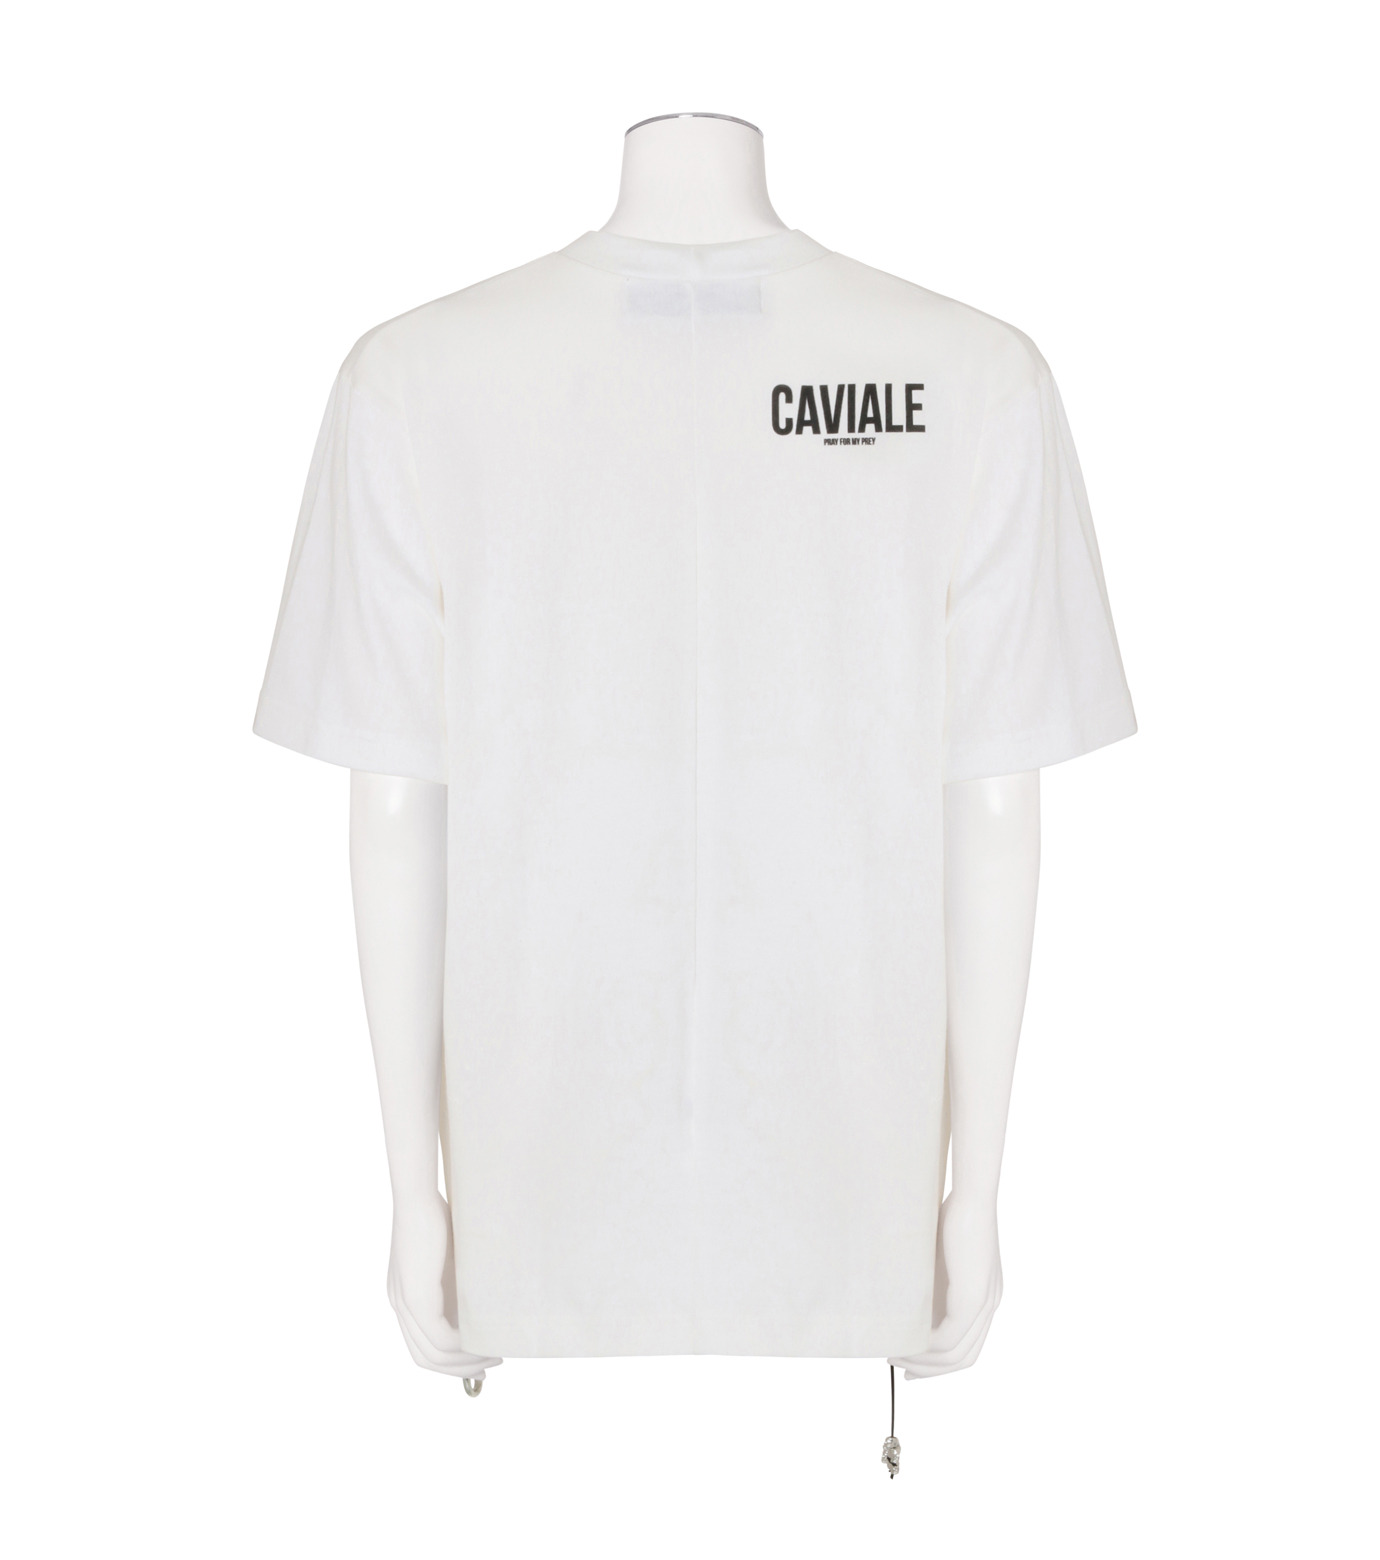 CAVIALE(カビアーレ)のPrinted T-WHITE(カットソー/cut and sewn)-C210-C215-4 拡大詳細画像2